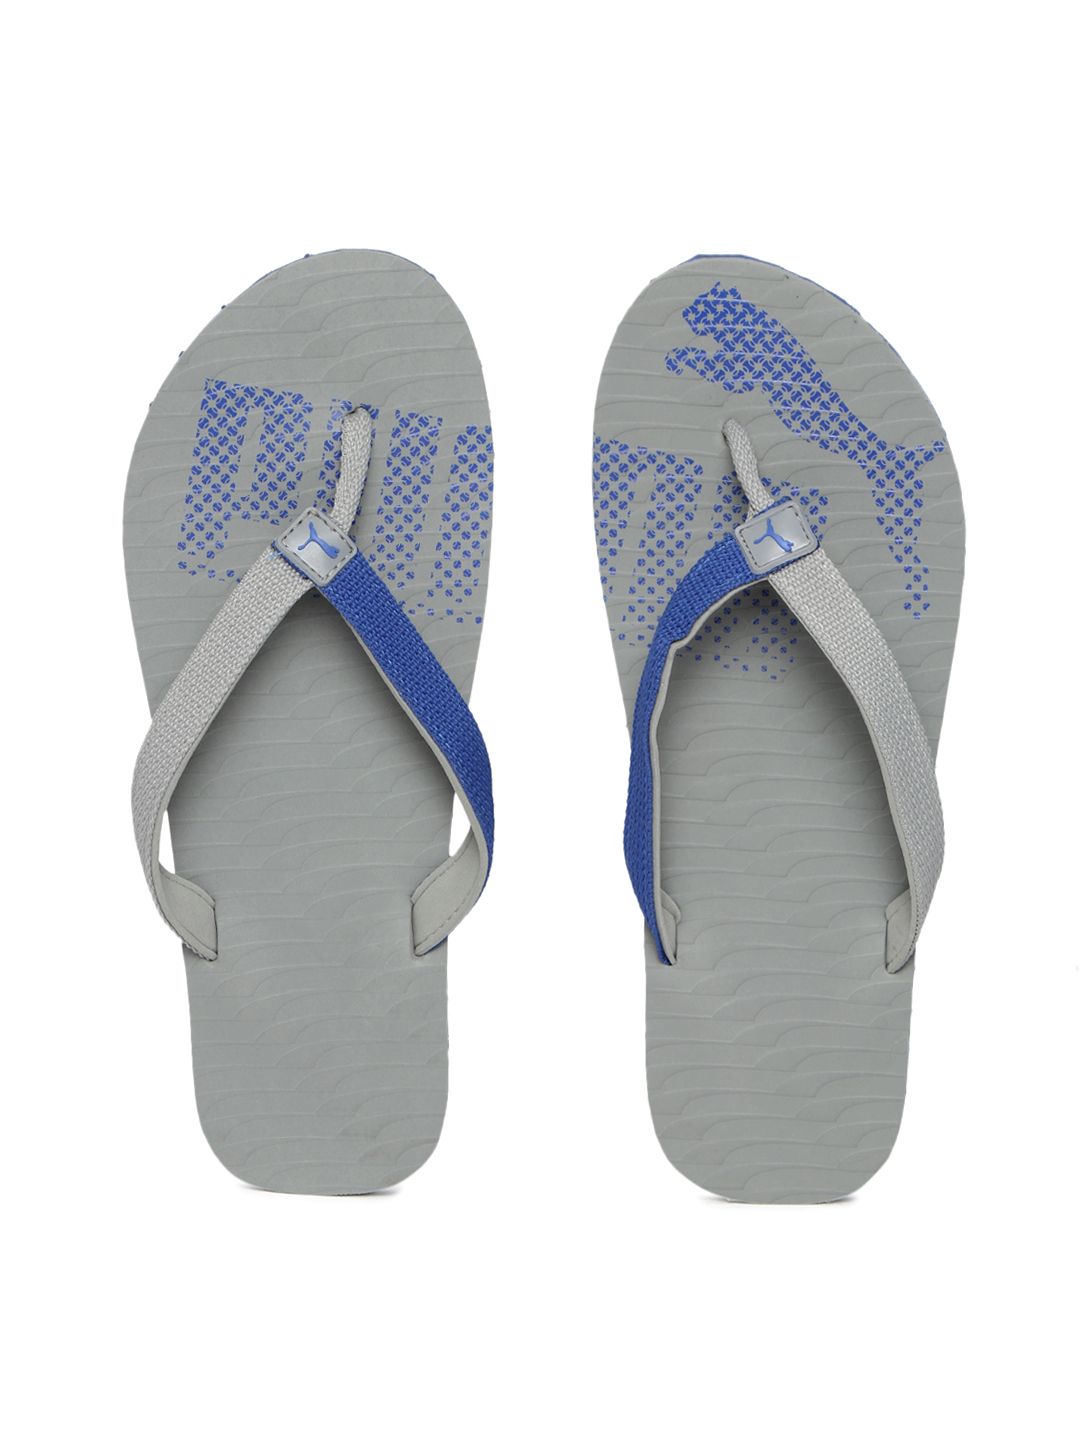 Puma Unisex Grey & Blue Miami Fashion II DP Printed Flip-Flops